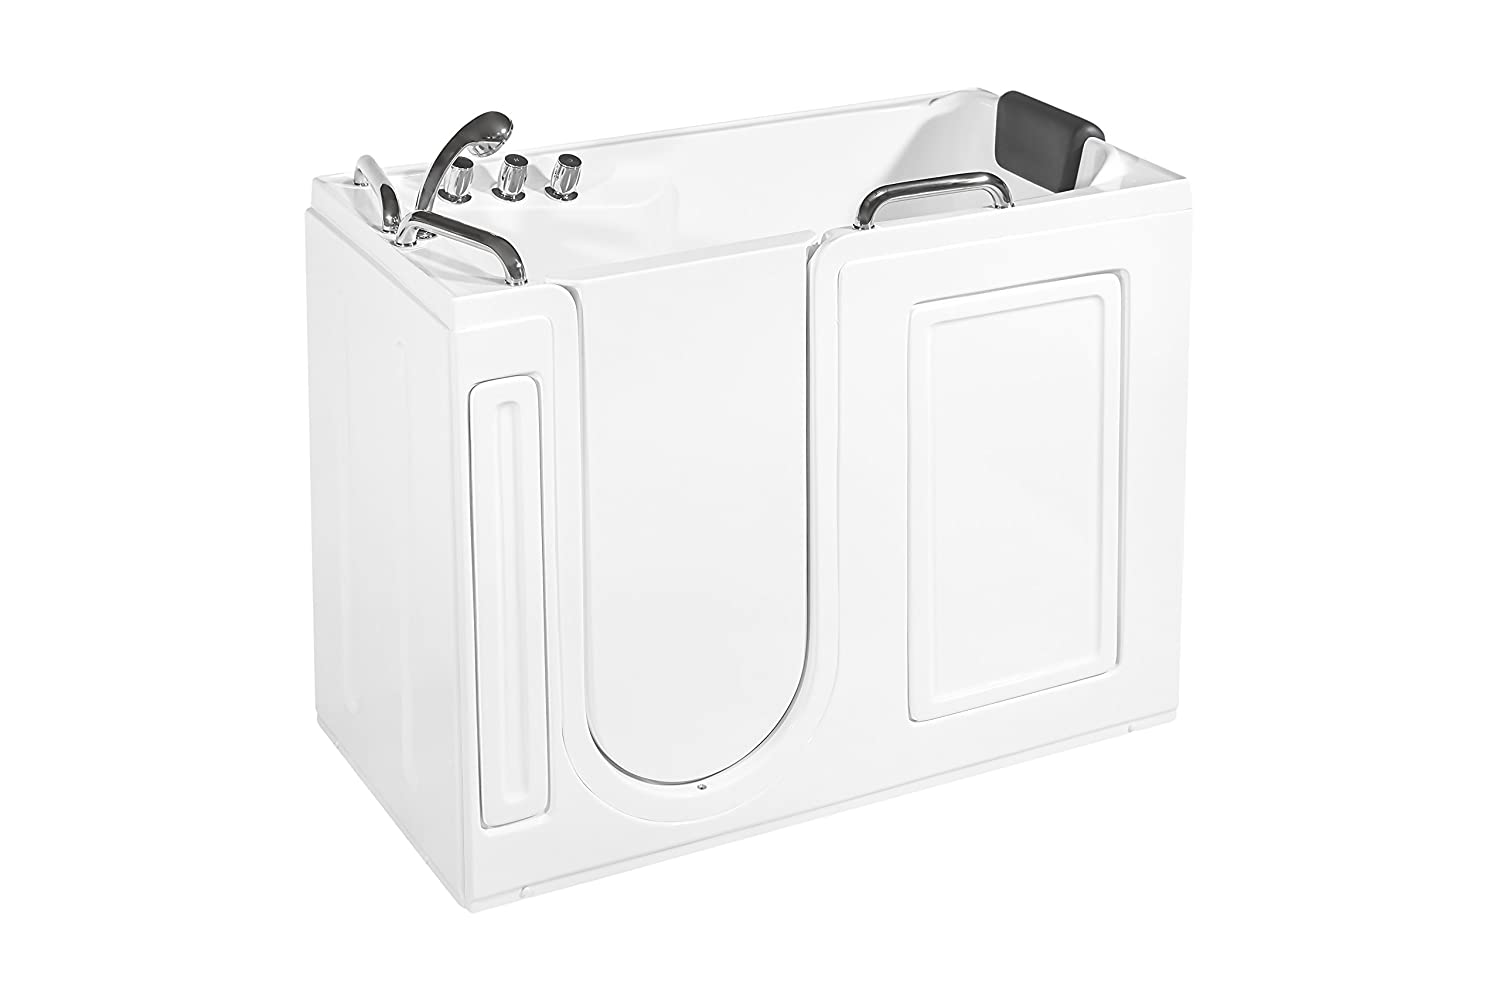 4. Empava 52.5 in. Acrylic Walk-in Tub